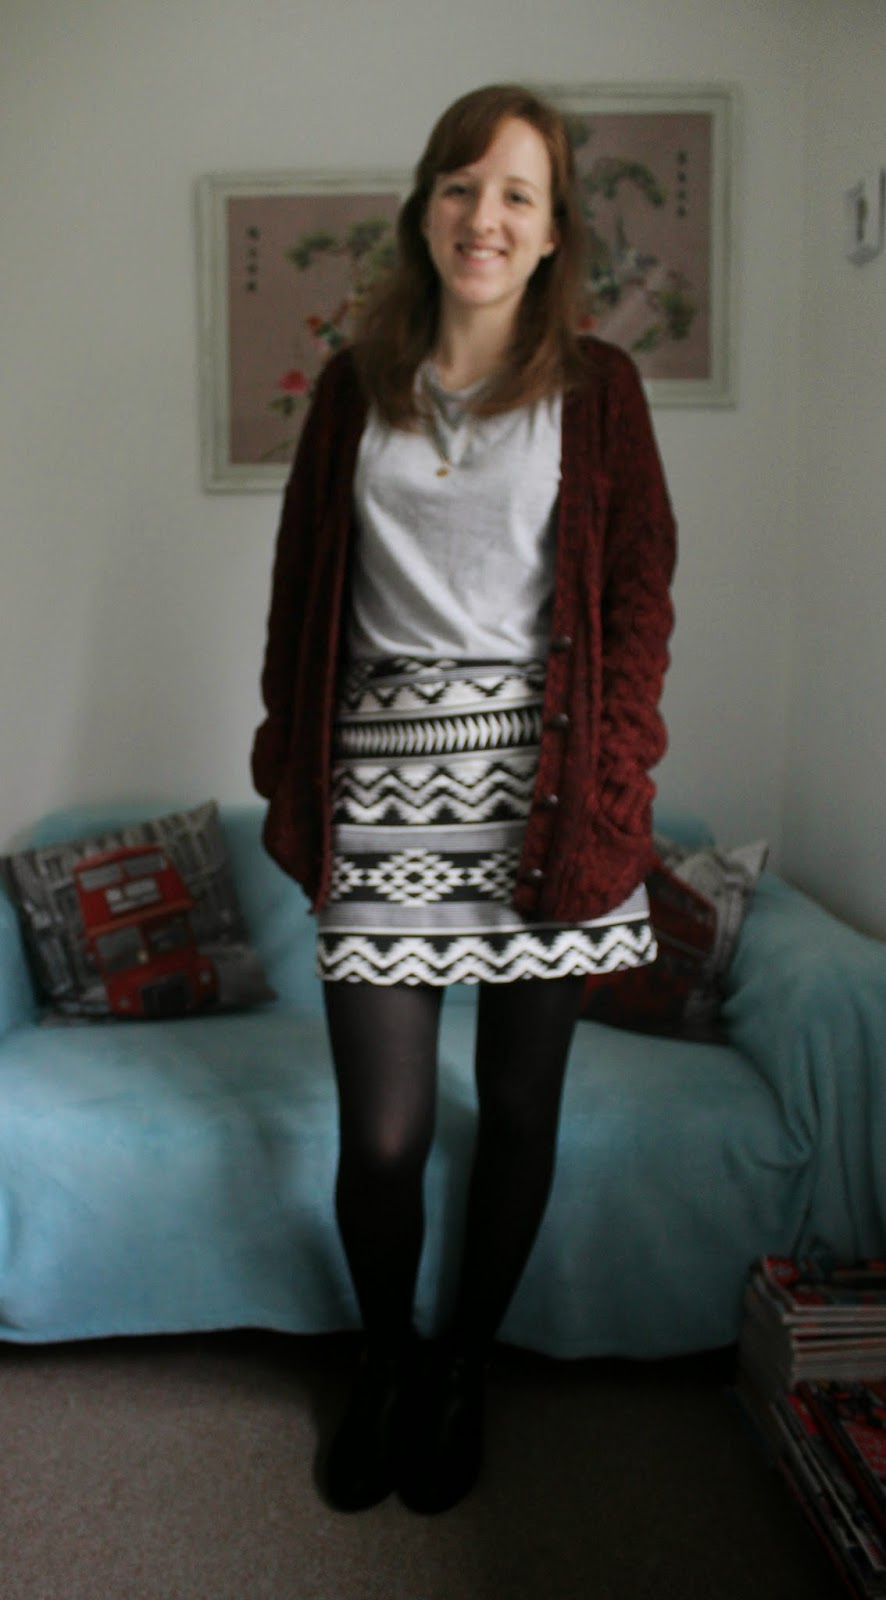 OOTD: That Aztec Skirt and Grey T-Shirt via Everything But The Kitchen Sink